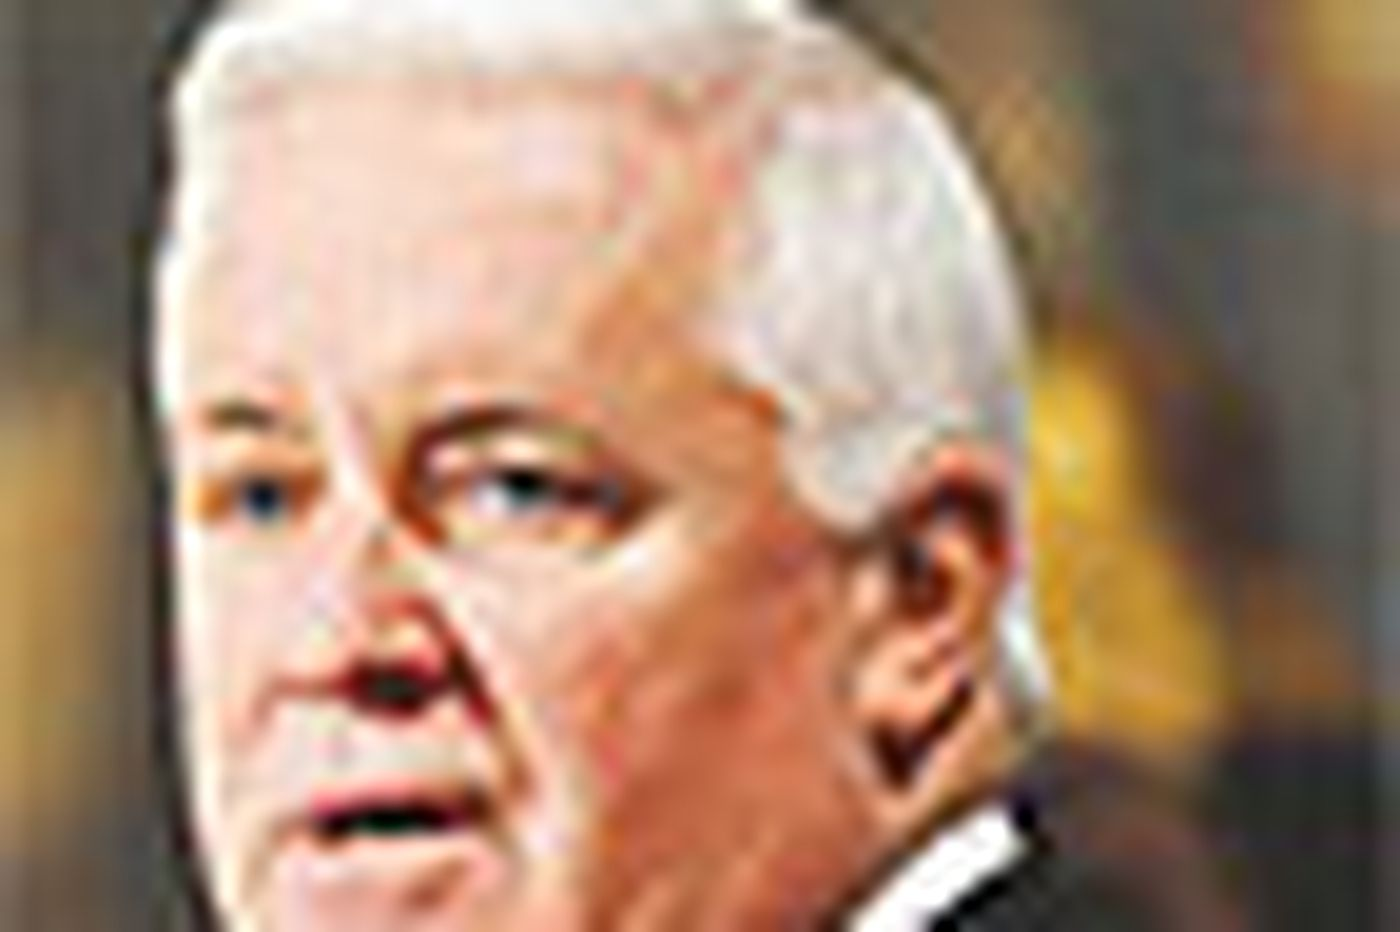 On open records issue, the Corbett administration is just plain silly